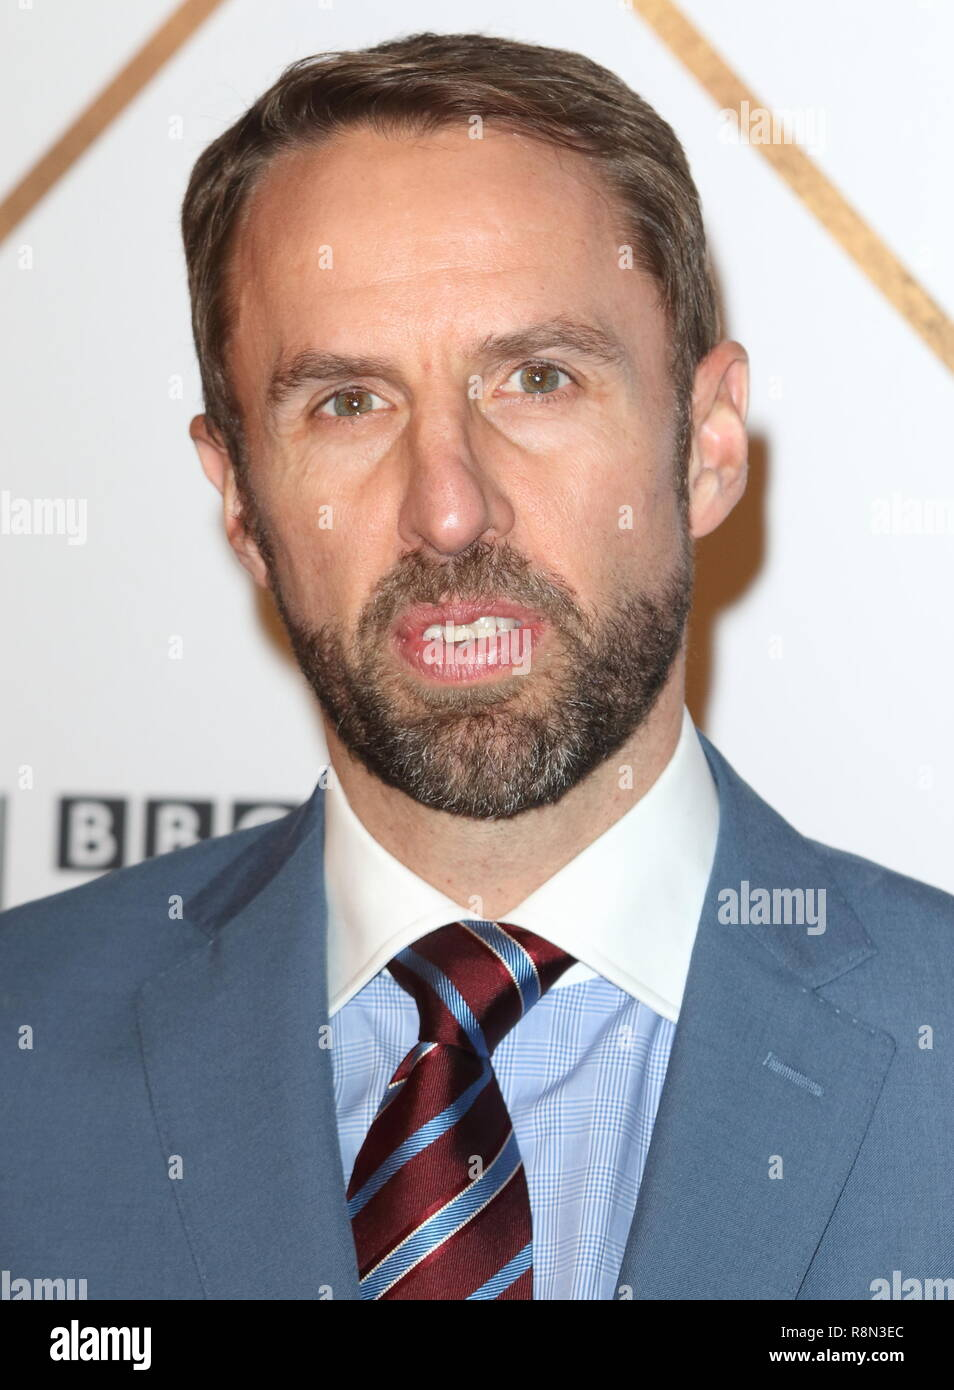 Gareth Southgate on the red carpet at the BBC Sports Personality Of The Year 2018 at the Resorts World Arena. - Stock Image